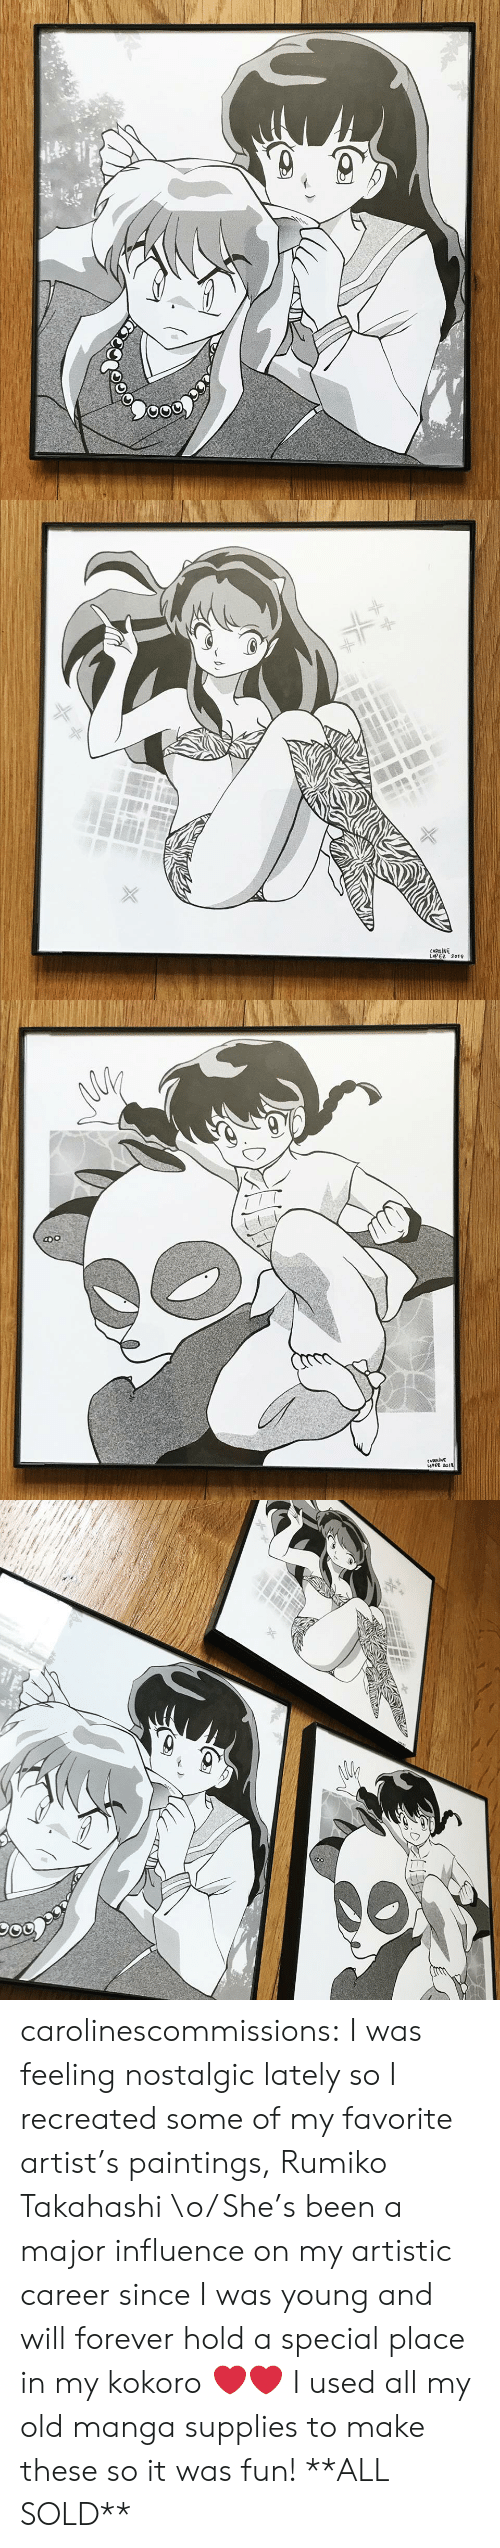 Paintings, Target, and Tumblr: CAROLINE  LoPE2 201 carolinescommissions: I was feeling nostalgic lately so I recreated some  of my favorite artist's paintings, Rumiko Takahashi \o/ She's been a  major influence on my artistic career since I was young and will forever  hold a special place in my kokoro ❤️❤️ I used all my old manga supplies to make these so it was fun! **ALL SOLD**